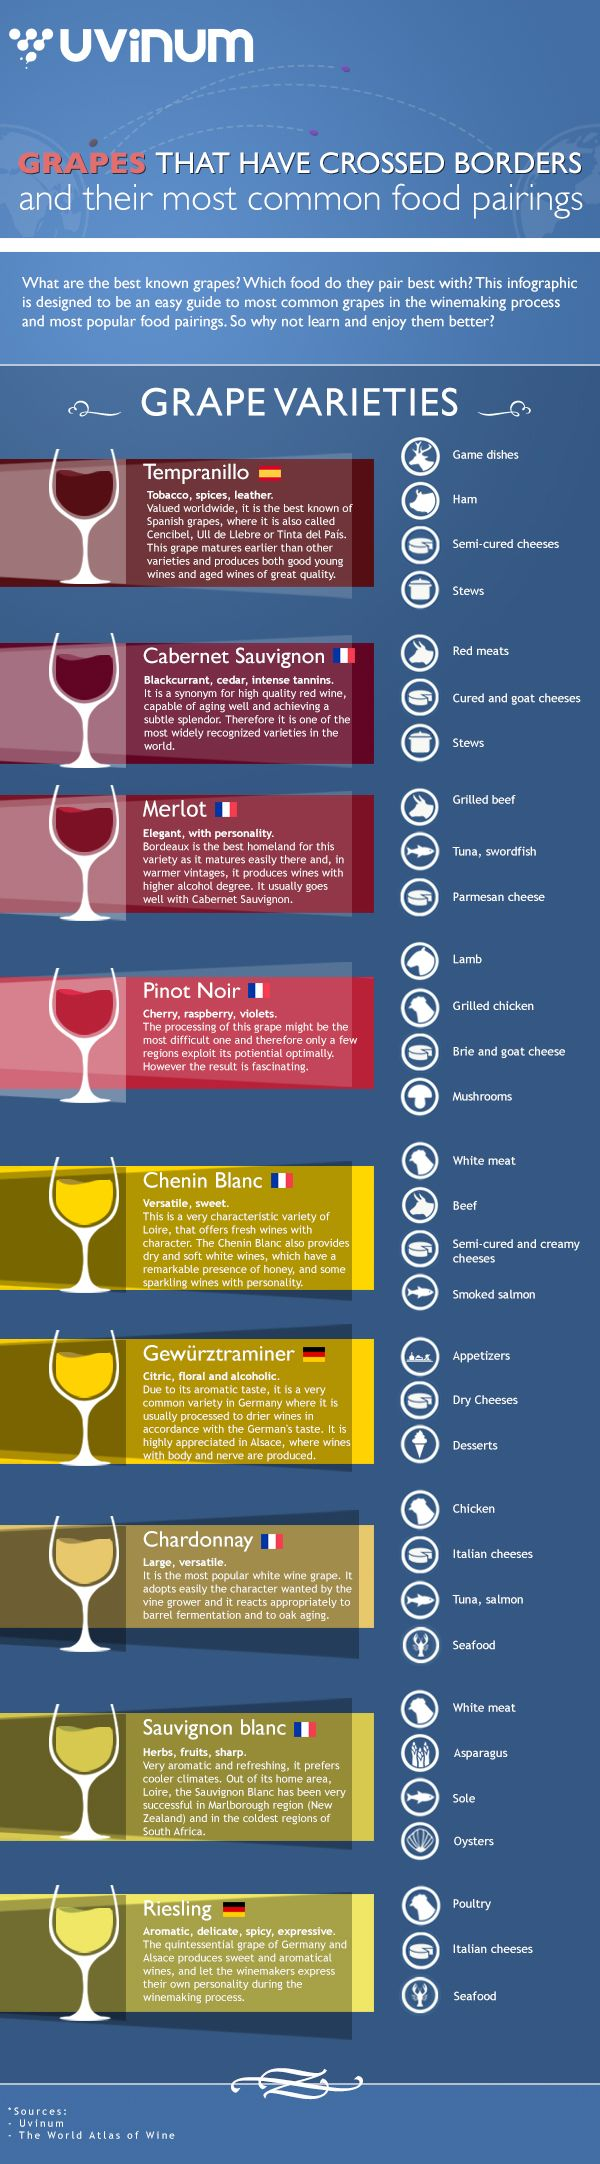 Grapes That Have Crossed Borders and Their Most Common Food Pairings